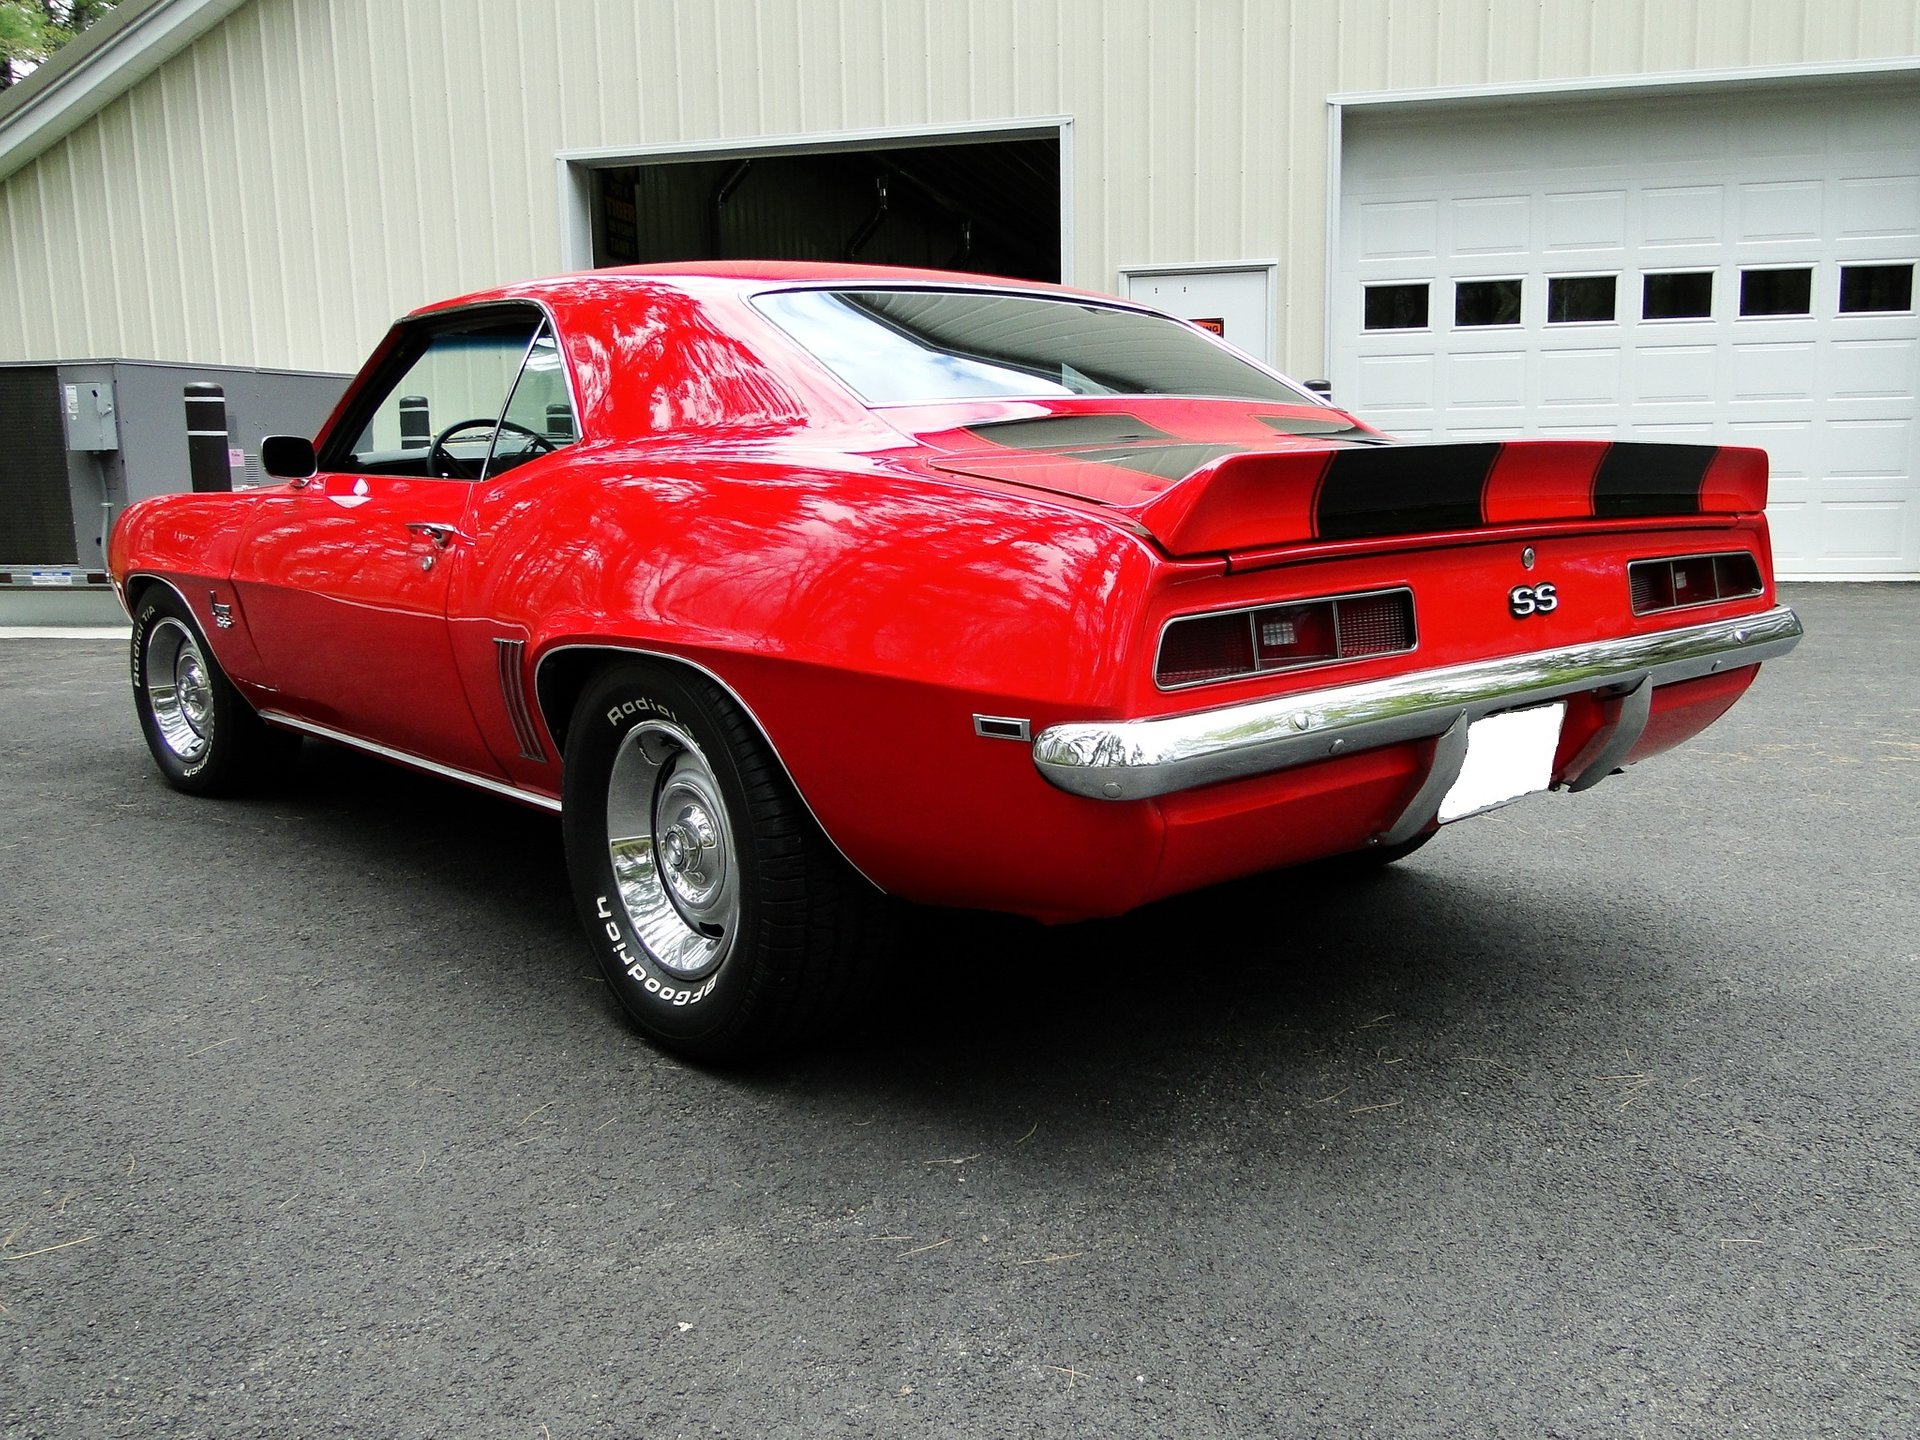 1969 Chevrolet Camaro | Legendary Motors - Classic Cars, Muscle Cars